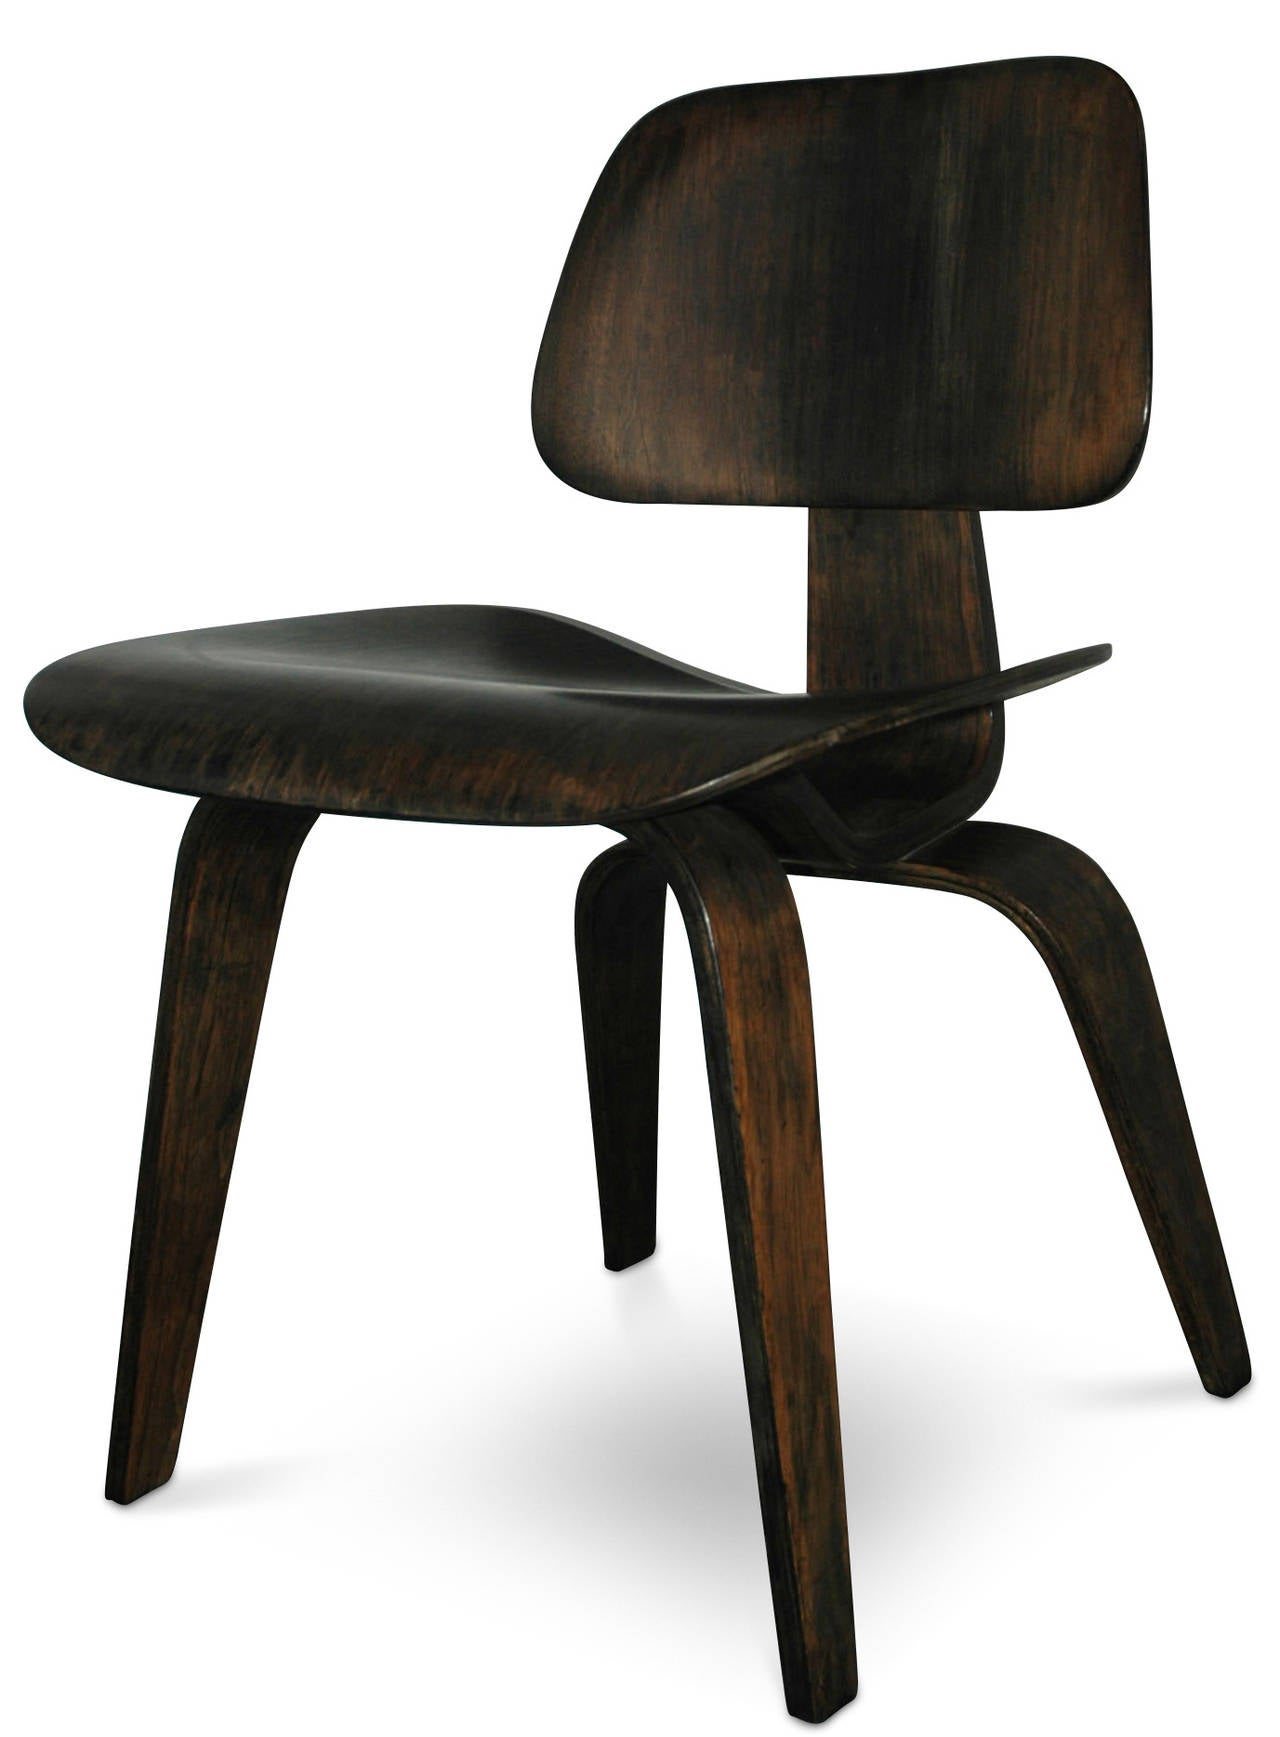 dcw dining chair wood by charles and ray eames for evans at 1stdibs. Black Bedroom Furniture Sets. Home Design Ideas